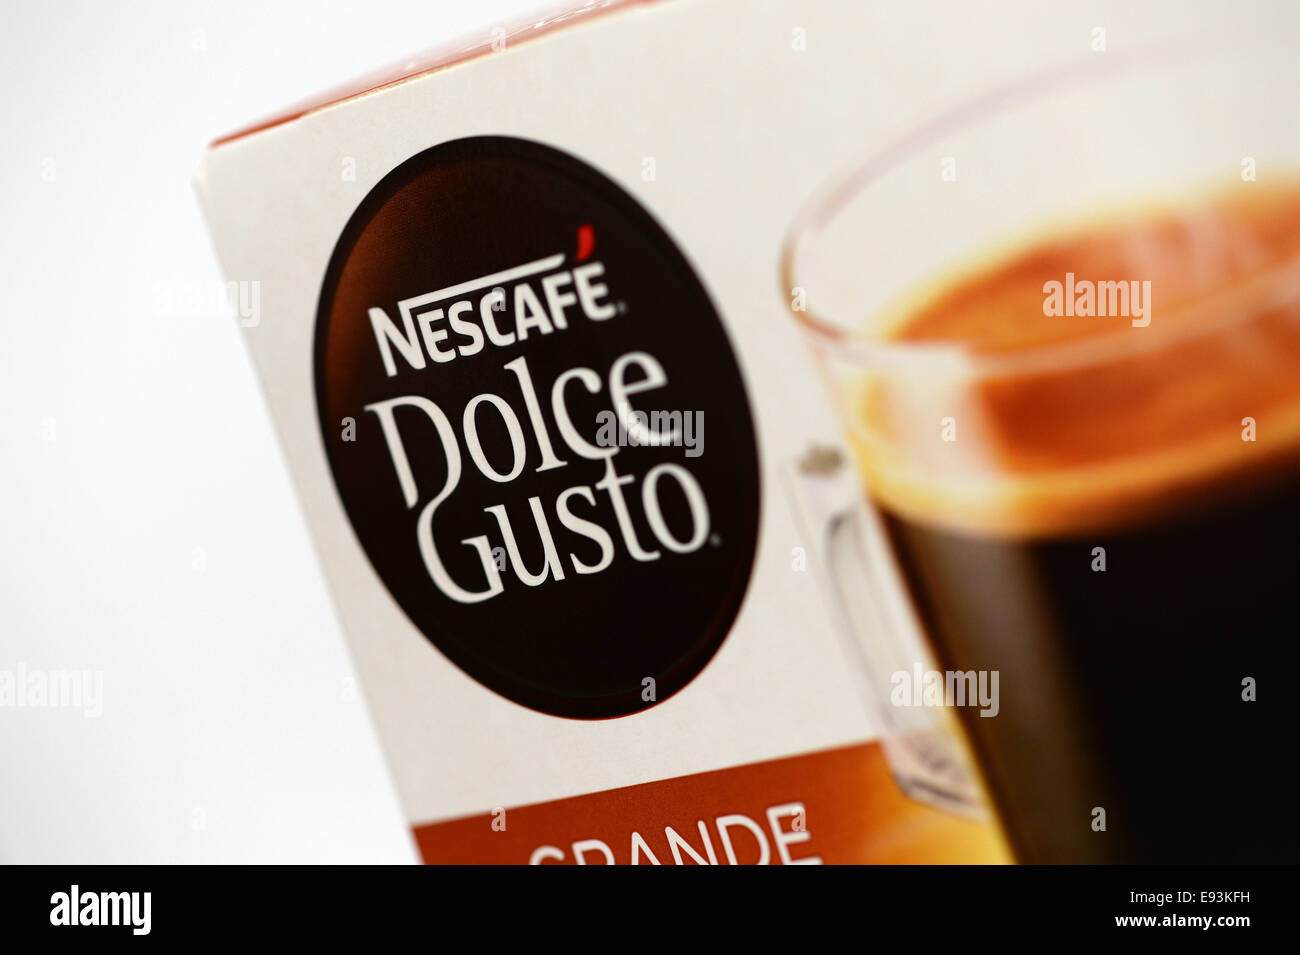 Nescafe Dolce Gusto coffee pod system - Stock Image